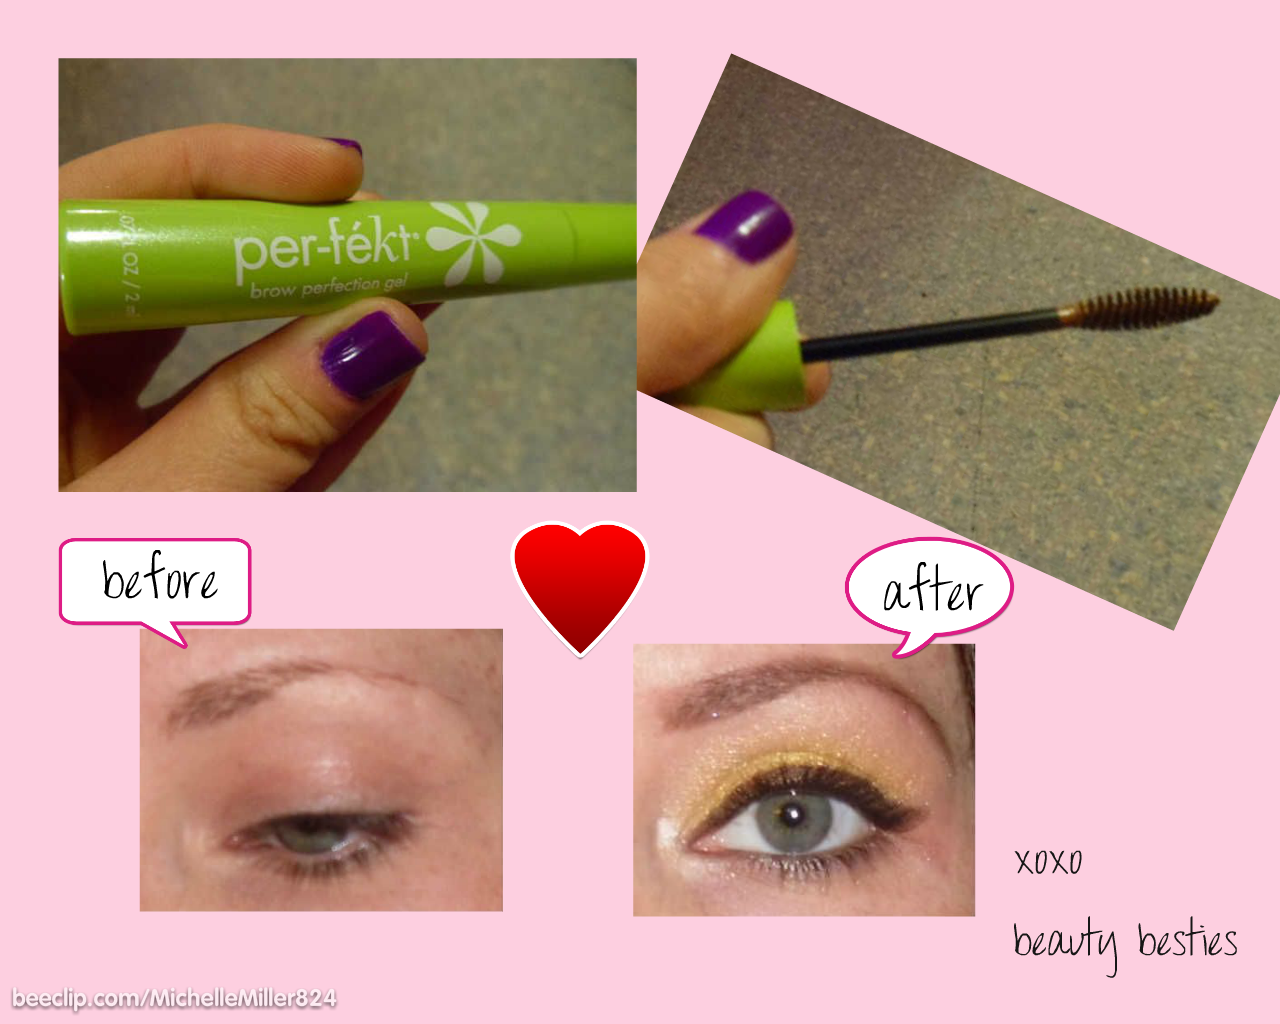 Per Fekt Brow Perfection Gel Photos Review You Can Have It All